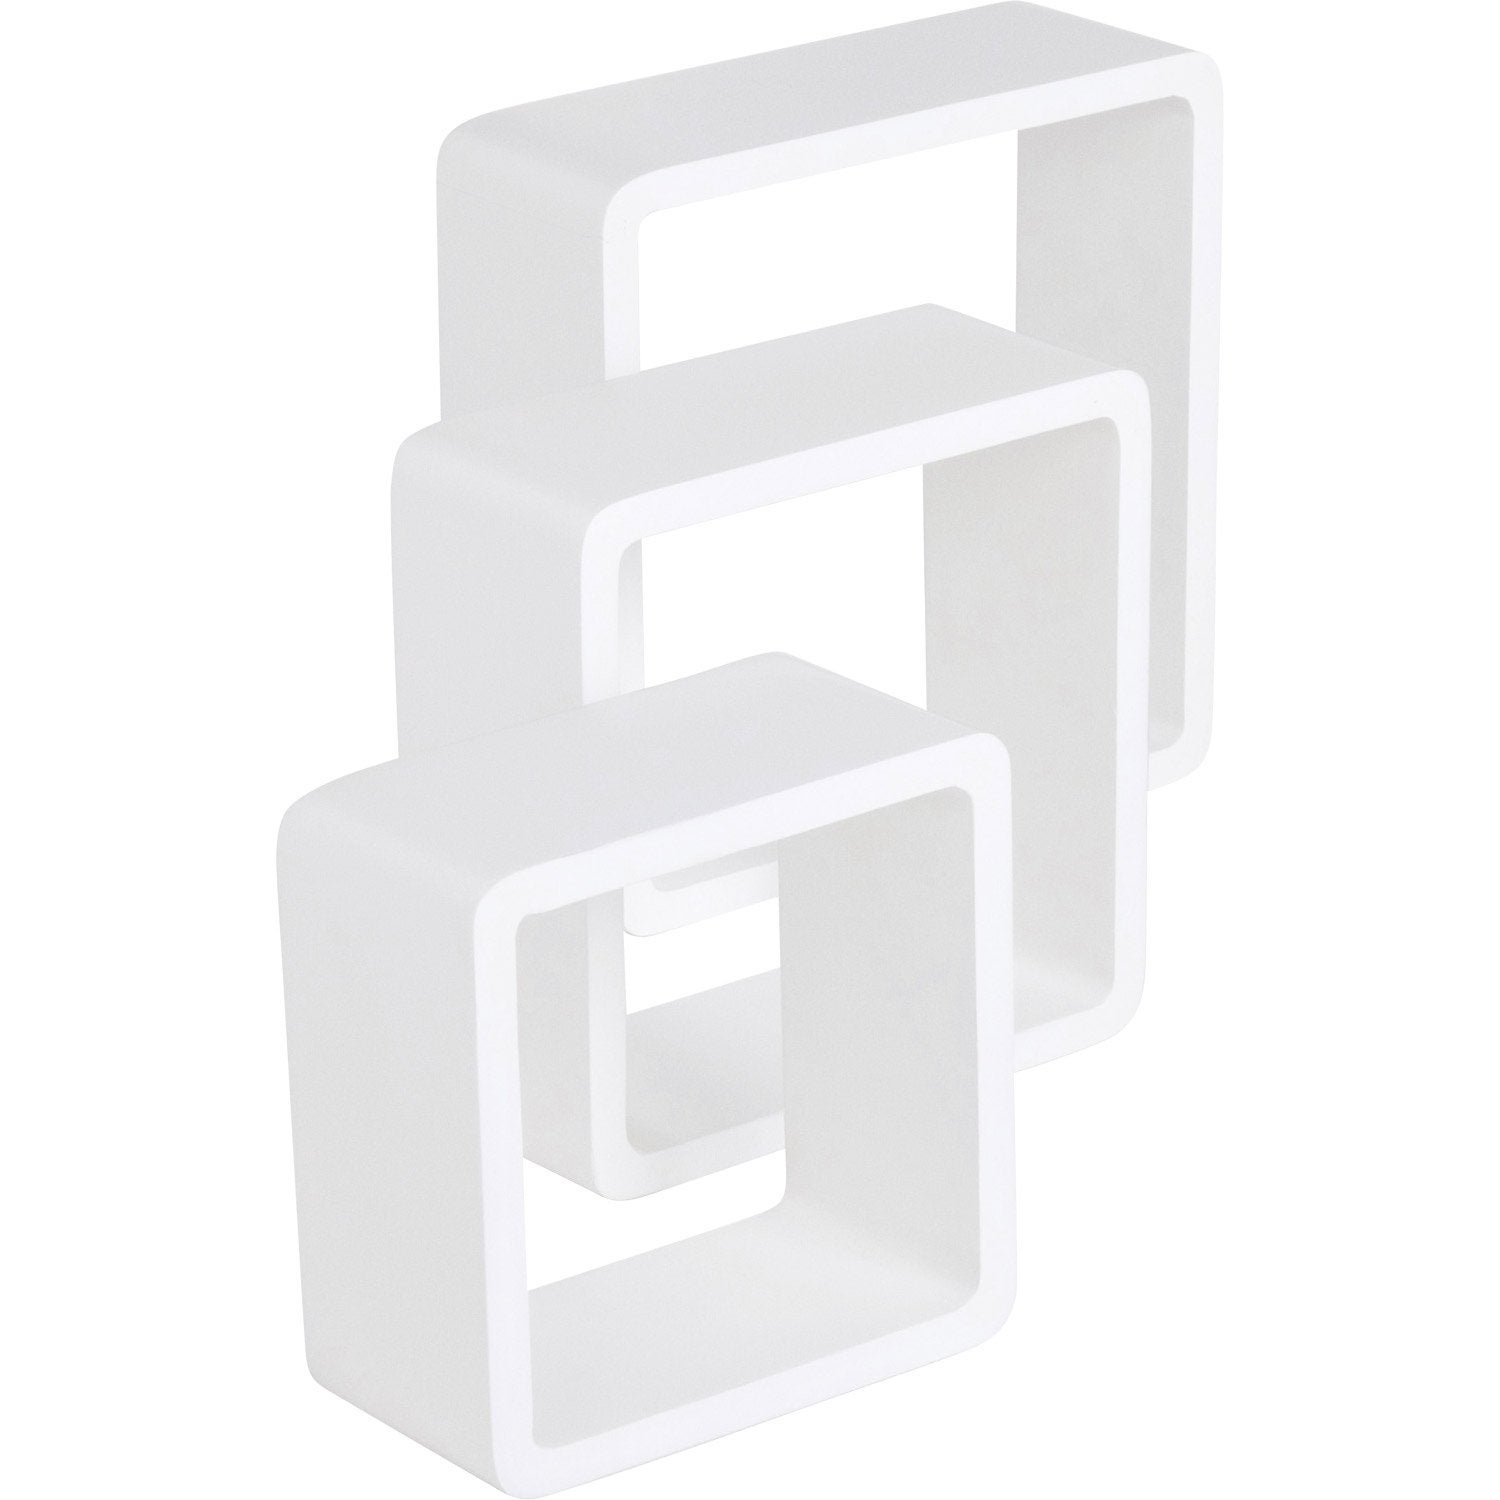 3 tag res cubes blanc super brillant spaceo l28xp28cm l24xp24cm l21xp21cm - Cube rangement leroy merlin ...